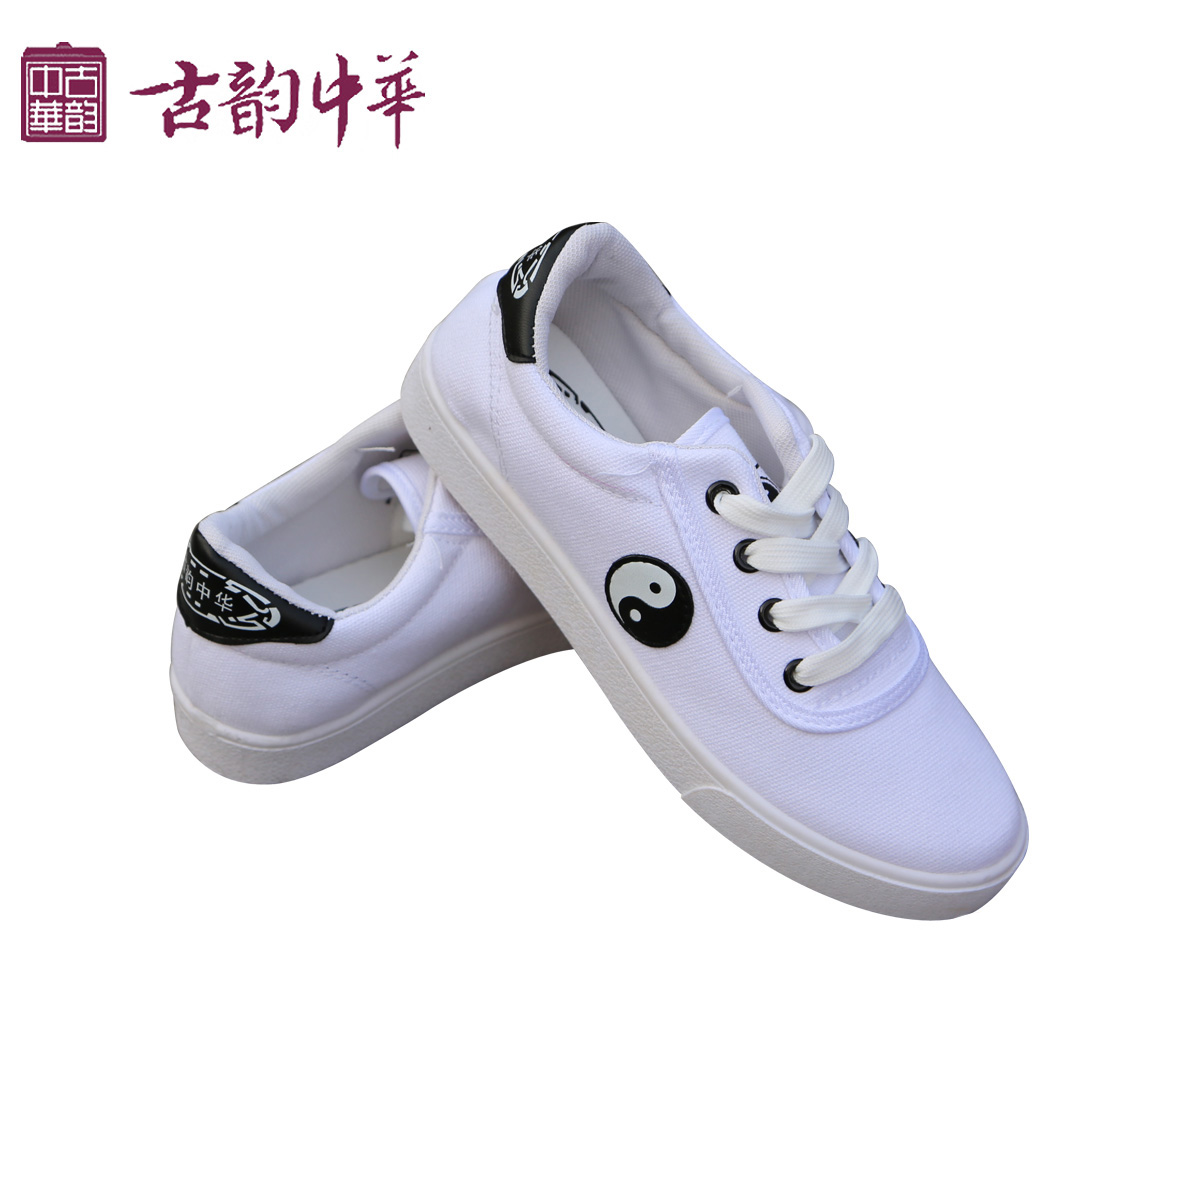 Ancient chinese cotton canvas shoes tai chi shoes vigorous sports shoes in black and white male and female models promotions